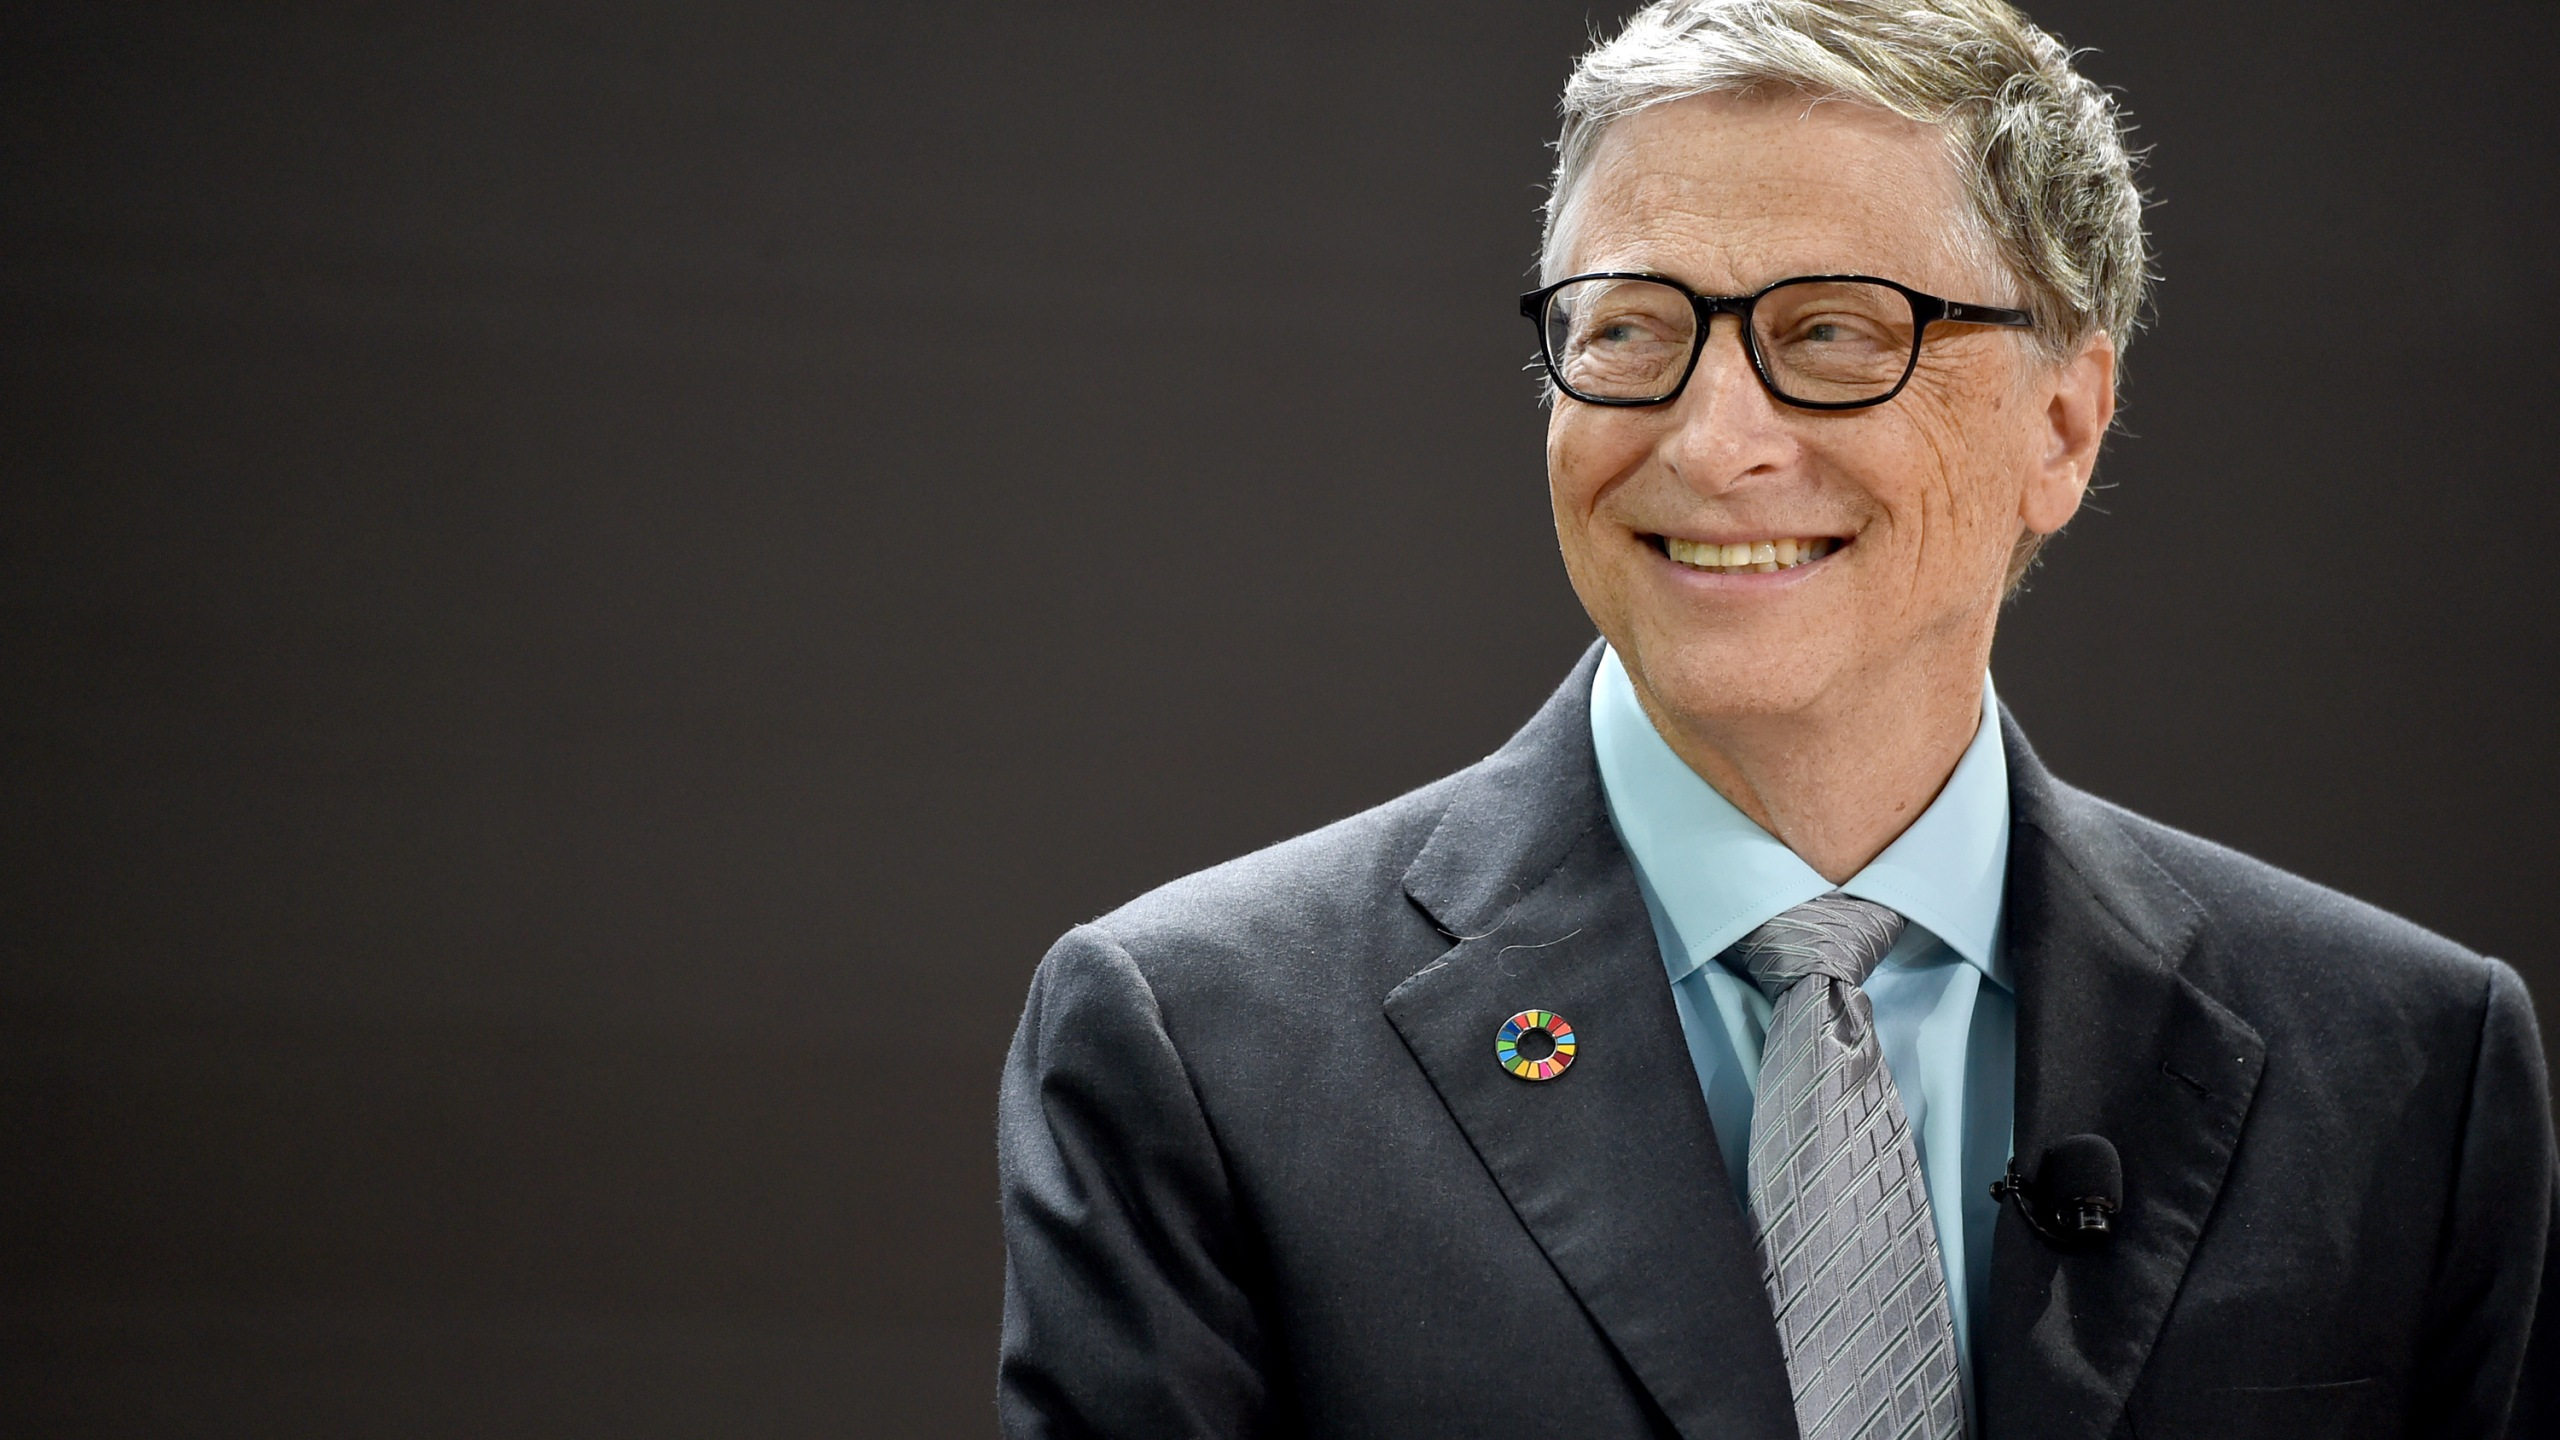 Picture of Bill Gates smiling